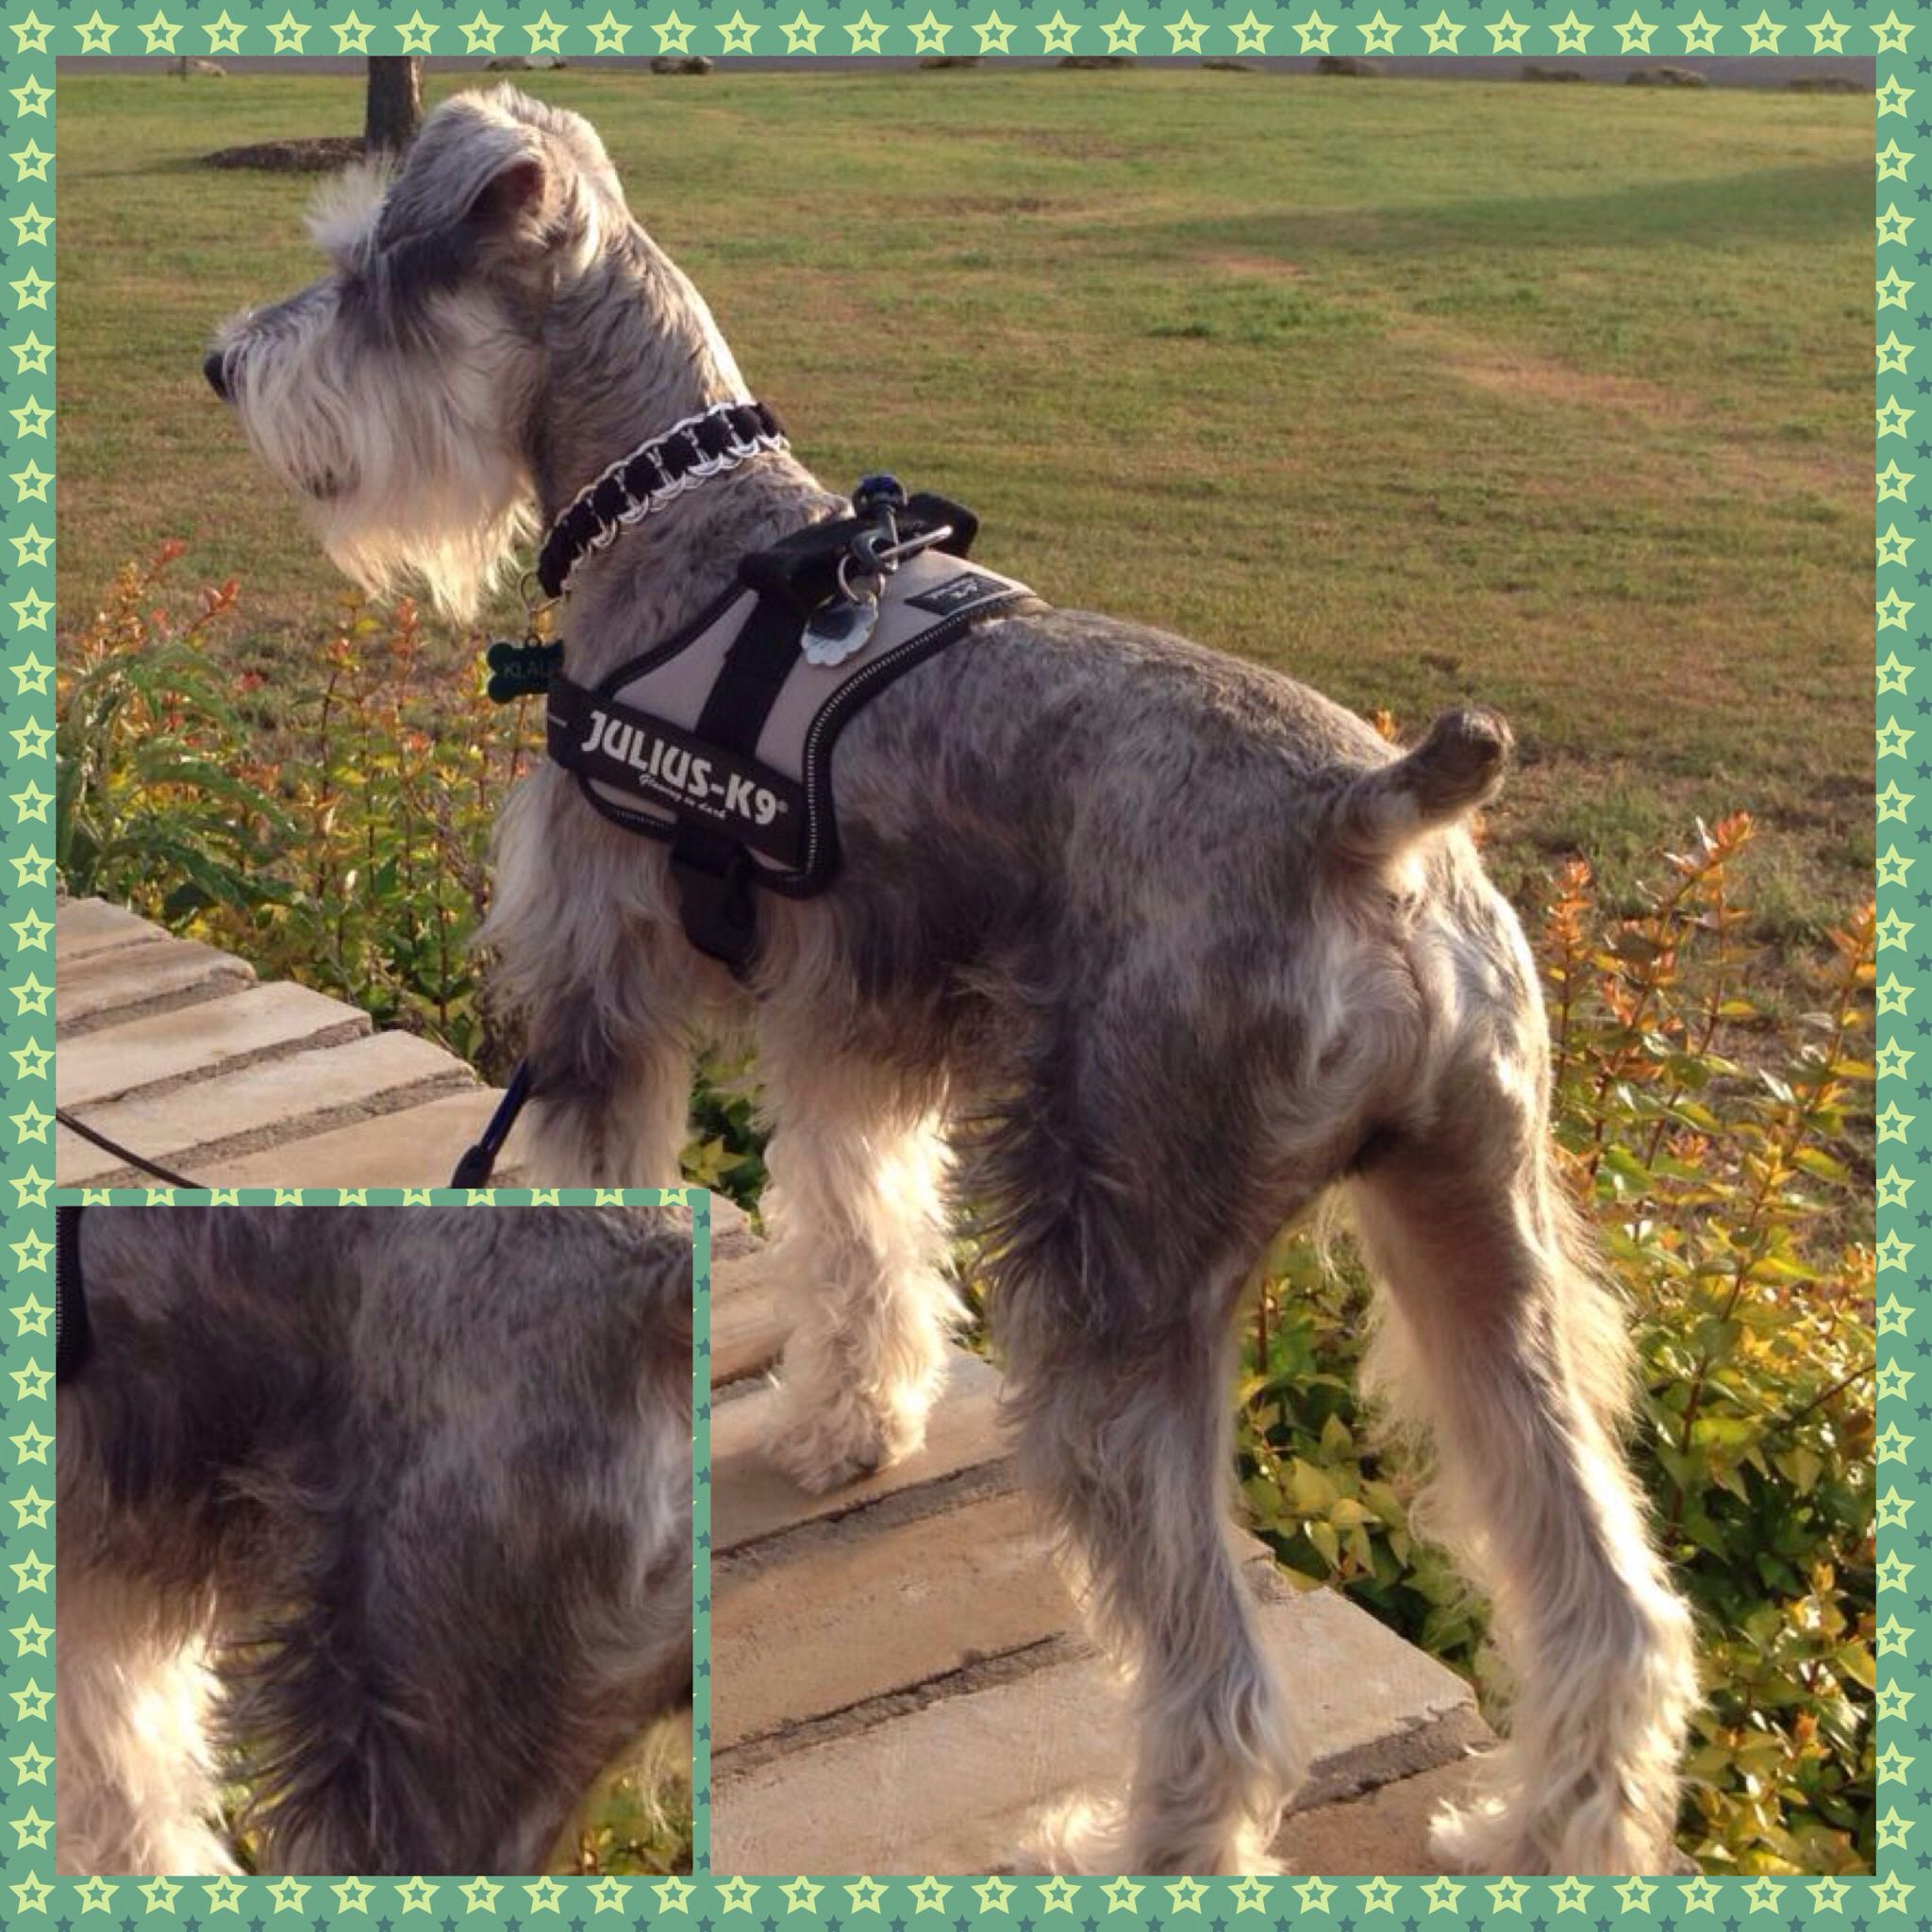 Pin By Catherine Engstrom On Schnauzer Love Mini Schnauzer Puppies Schnauzer Puppy Giant Schnauzer